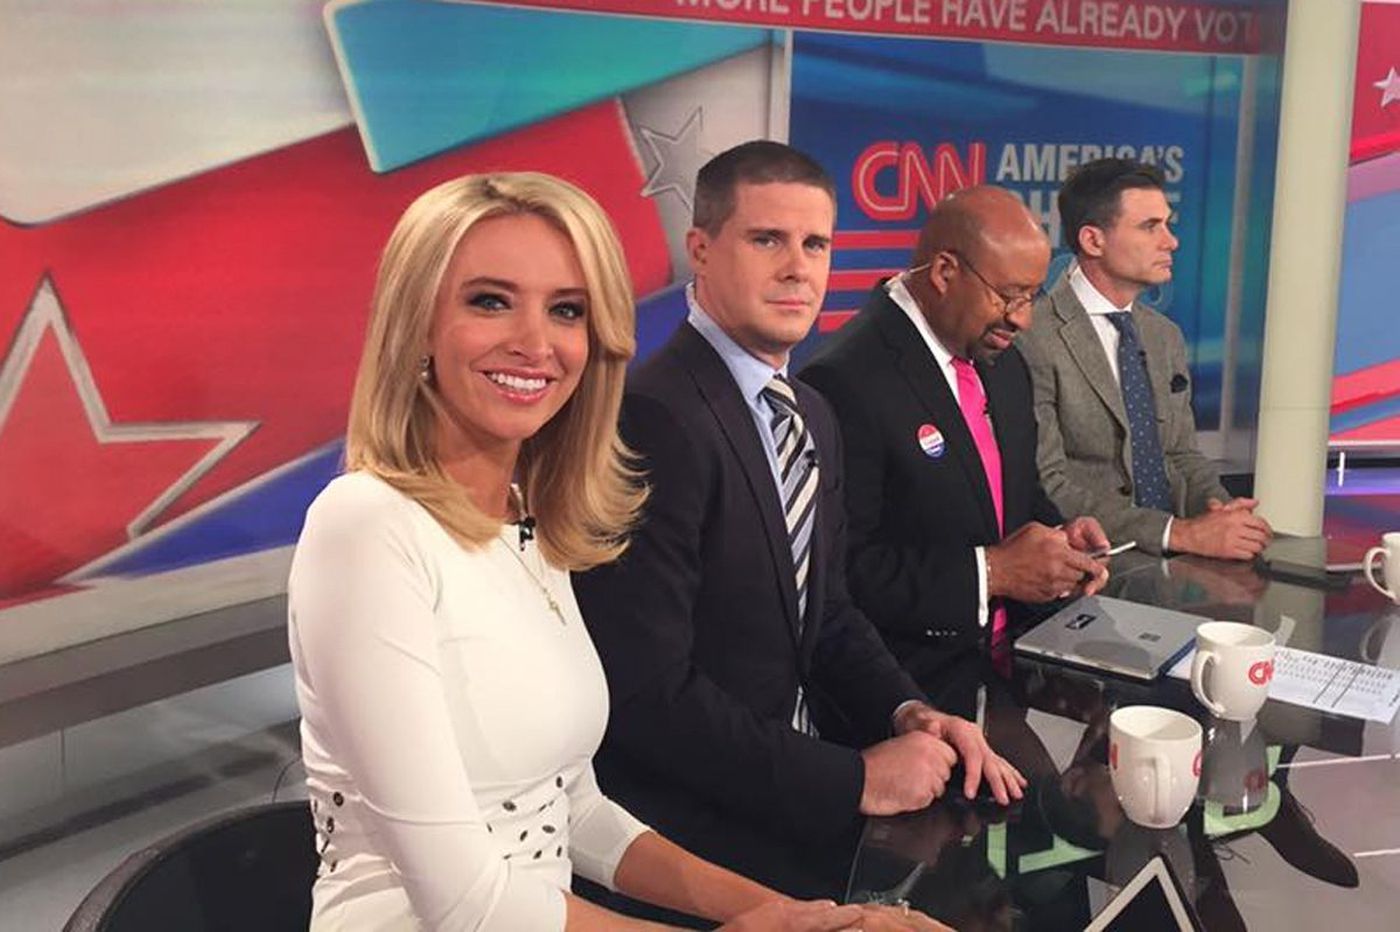 Conservative pundit Kayleigh McEnany out at CNN